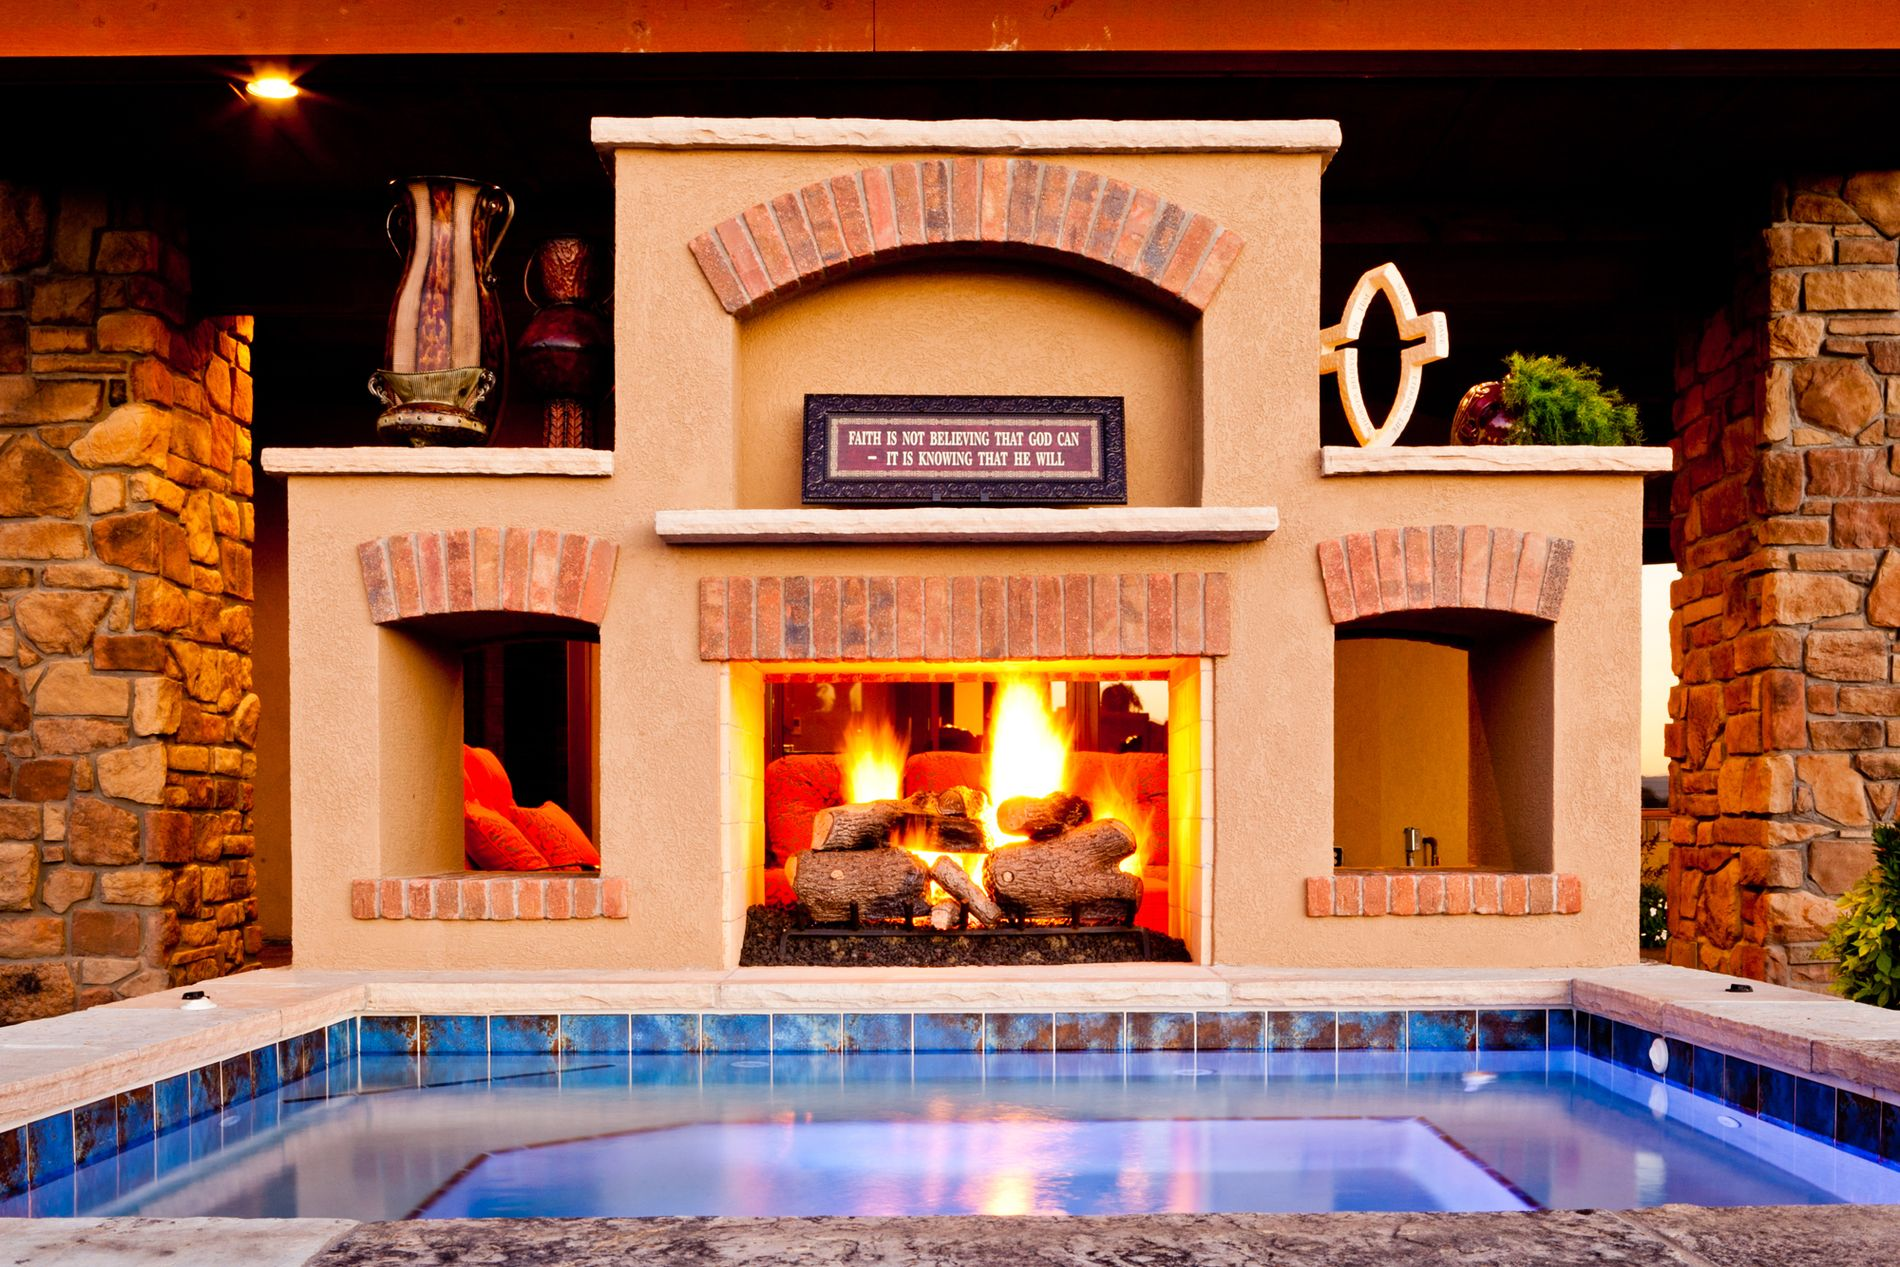 See Through Outdoor Fireplace with Hot Tub